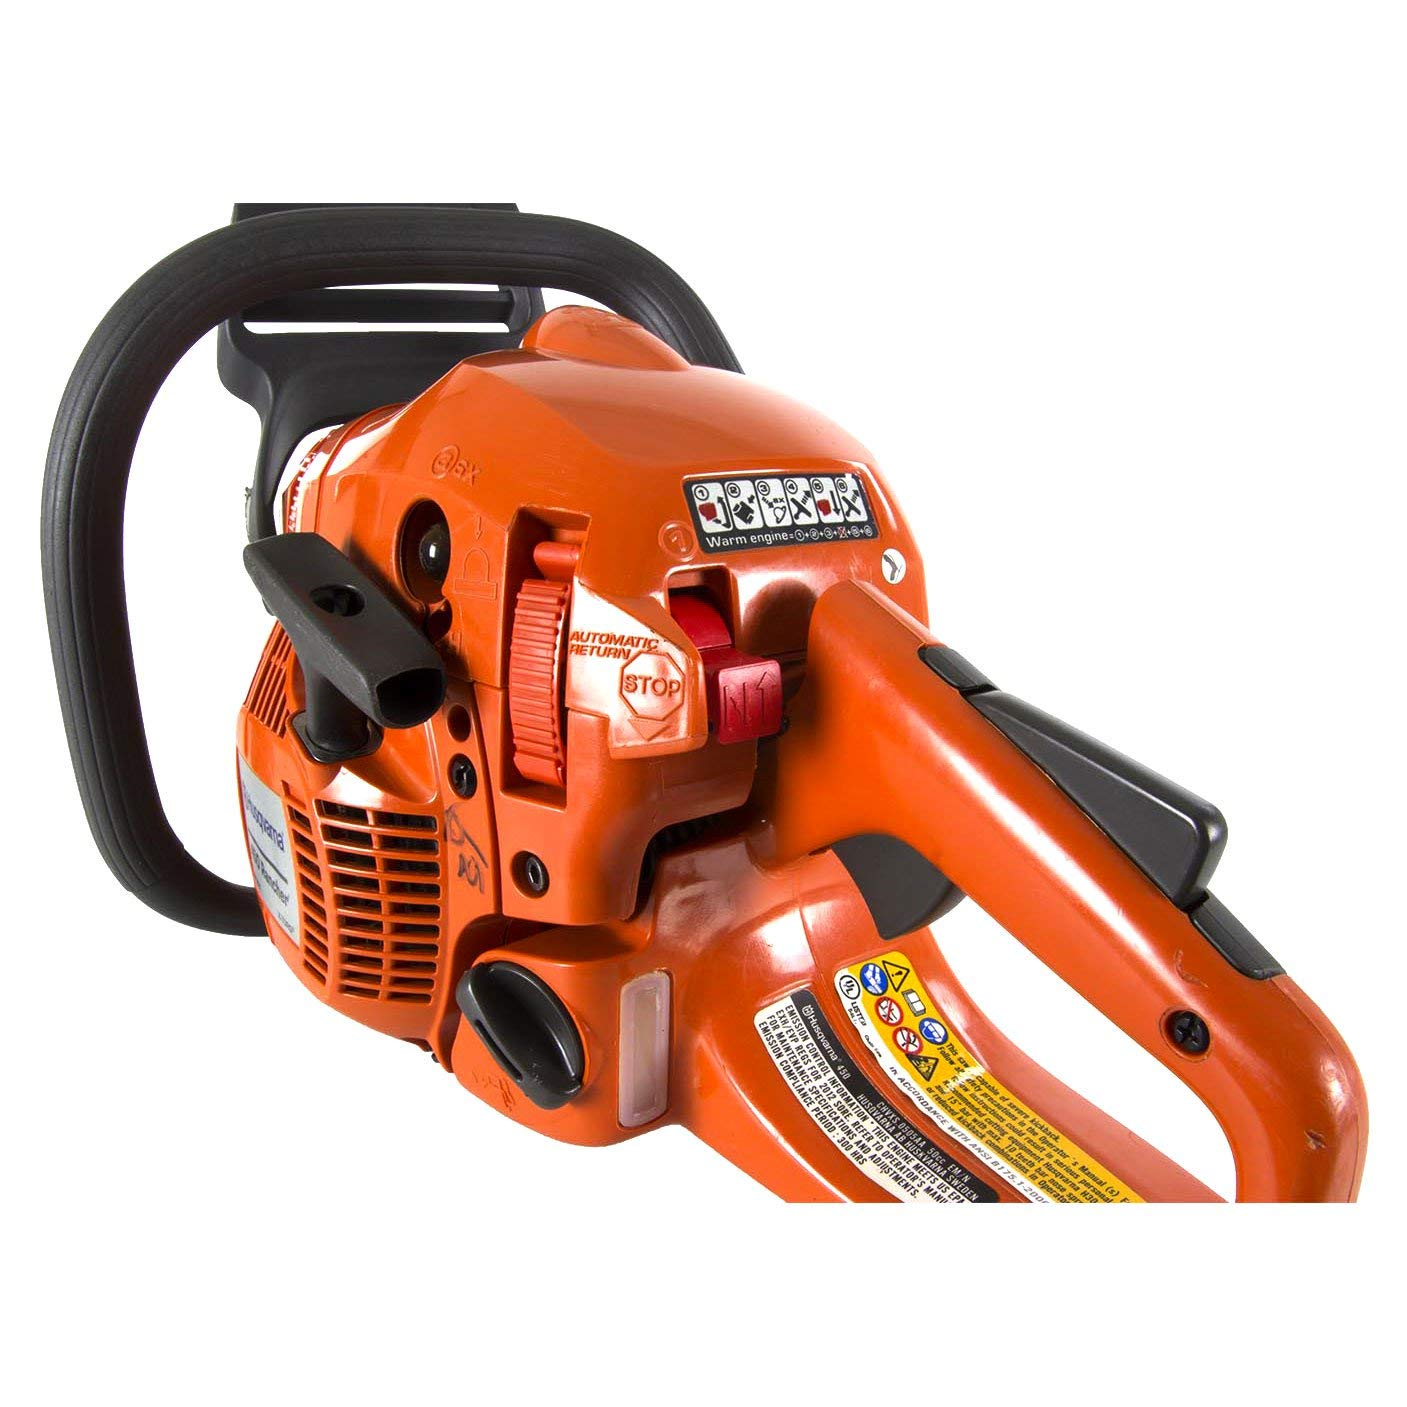 """Amazon.com : Husqvarna 450 20"""" 50.2cc Gas Powered 2 Cycle Chainsaw  (Certified Refurbished) (2 Pack) : Garden & Outdoor"""